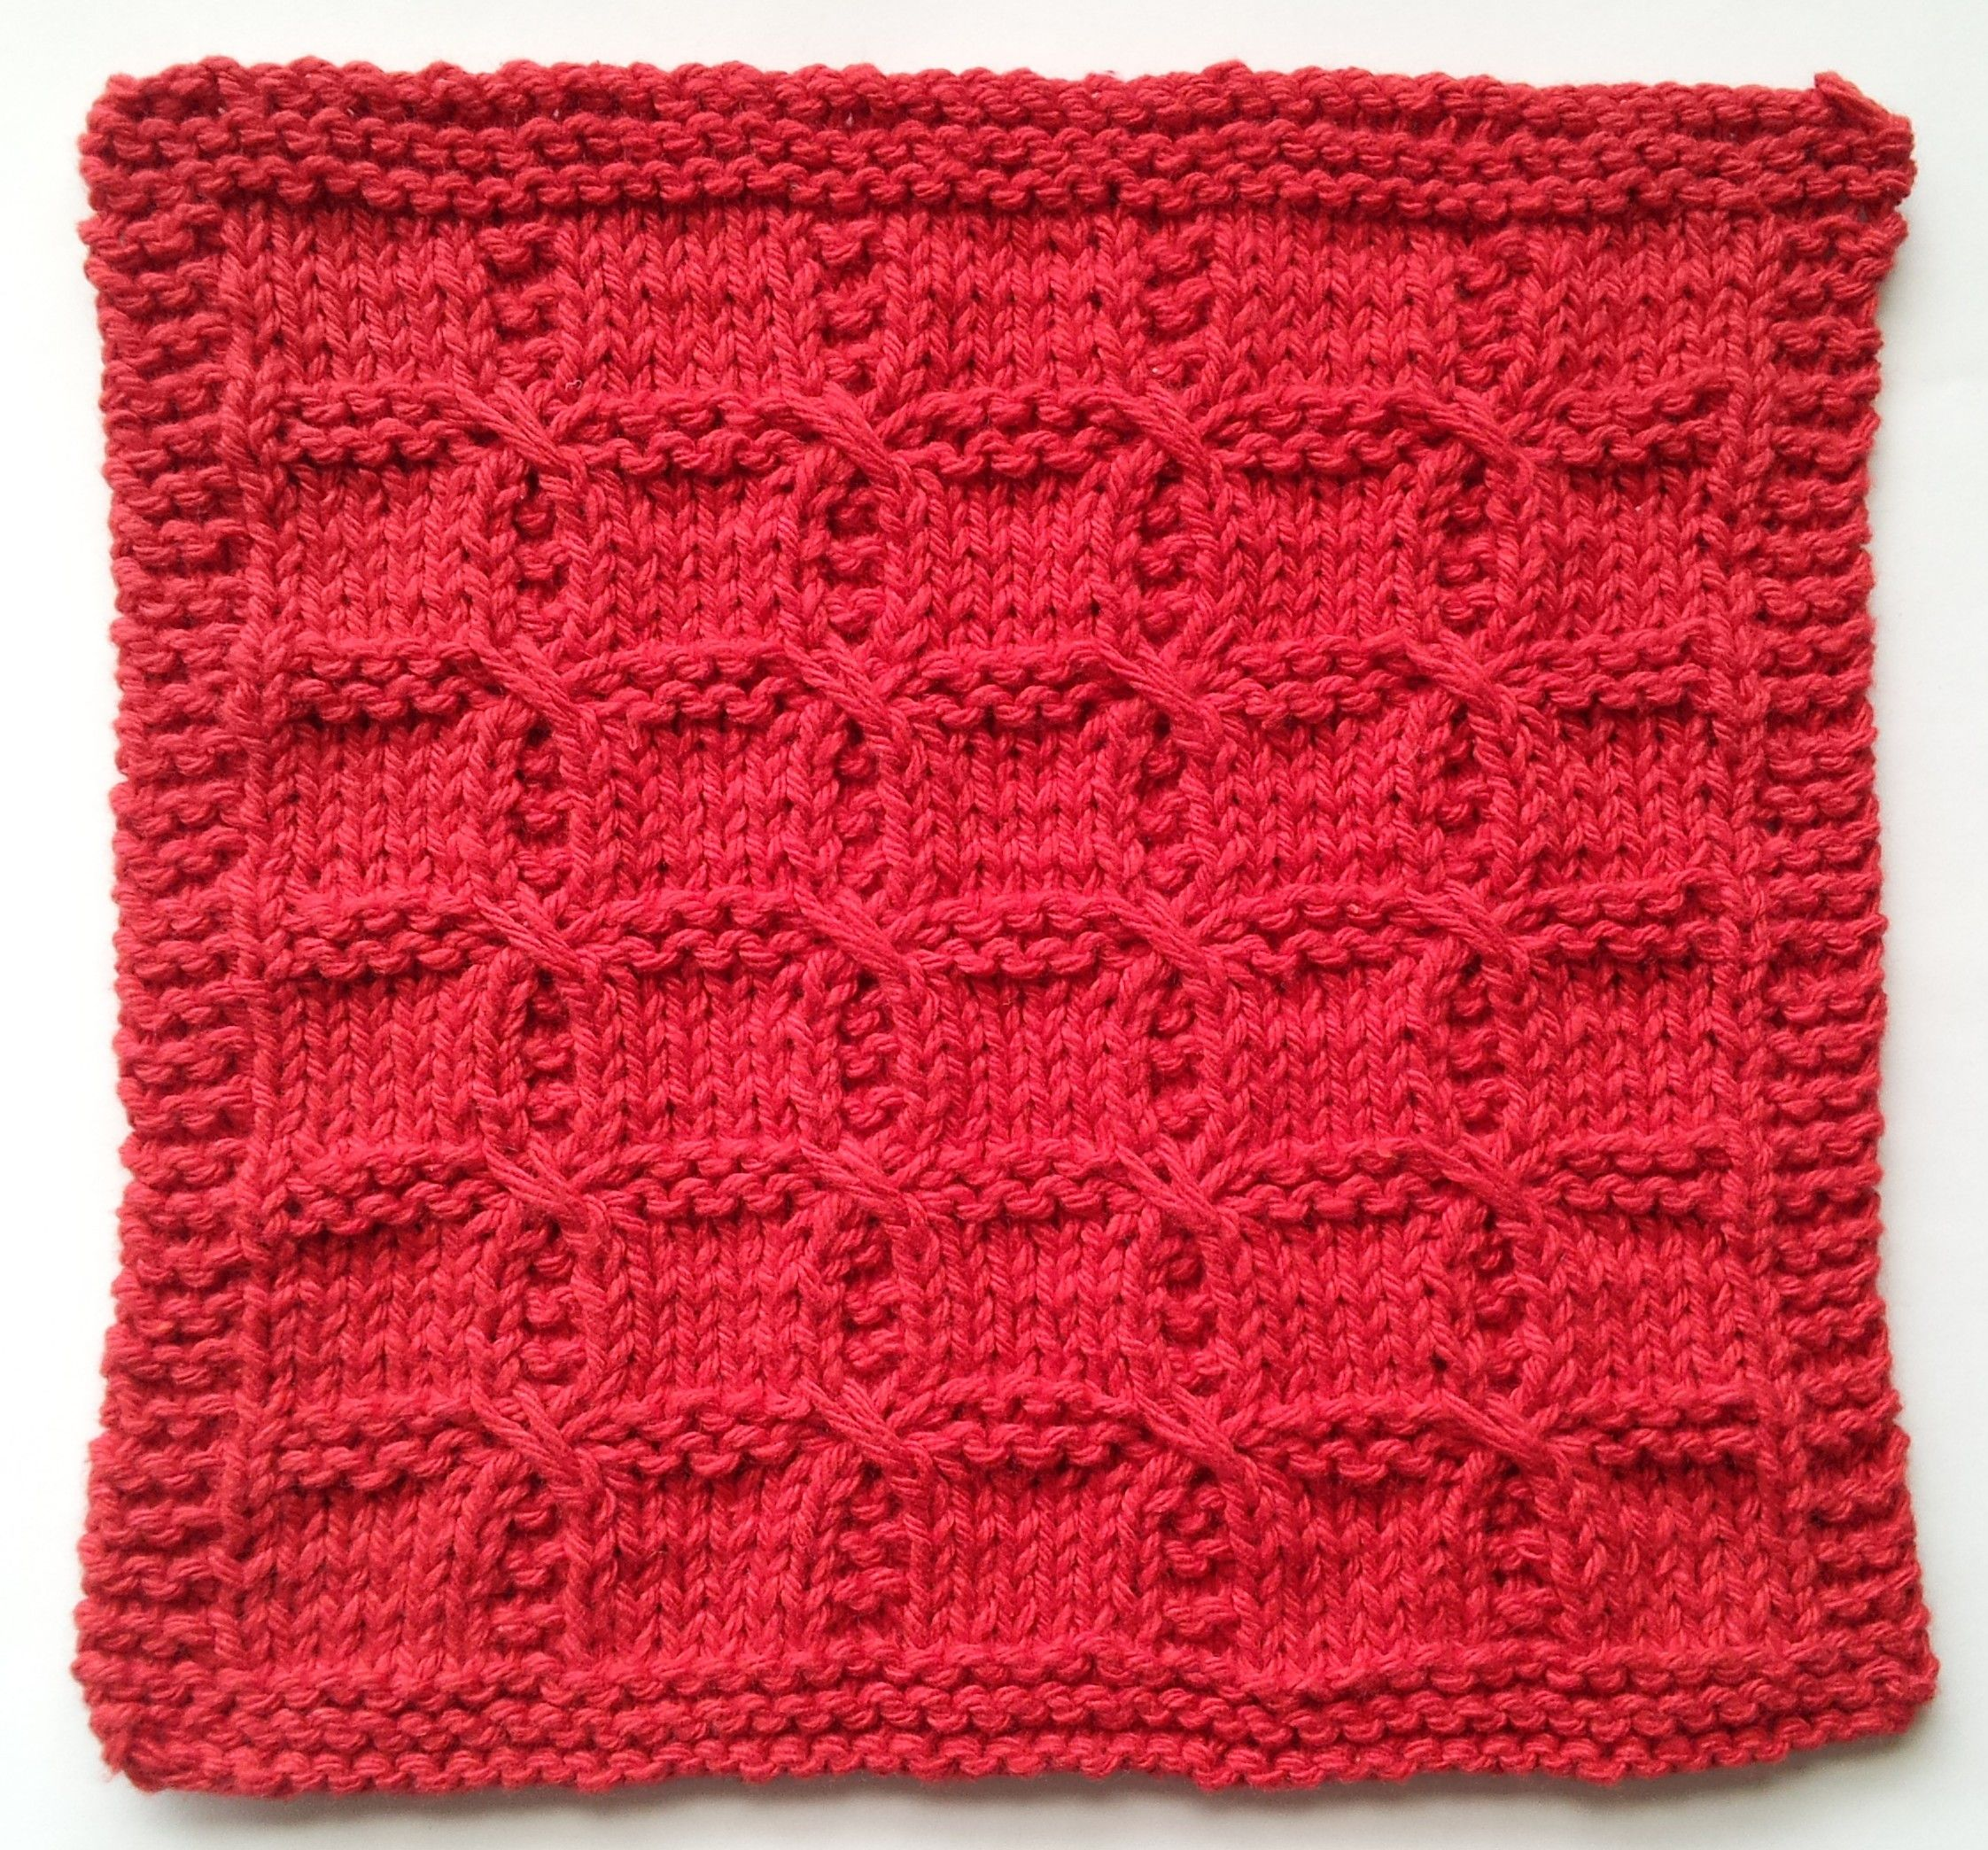 Swish with a Twist knitted washcloth pattern. | Knitting | Pinterest ...